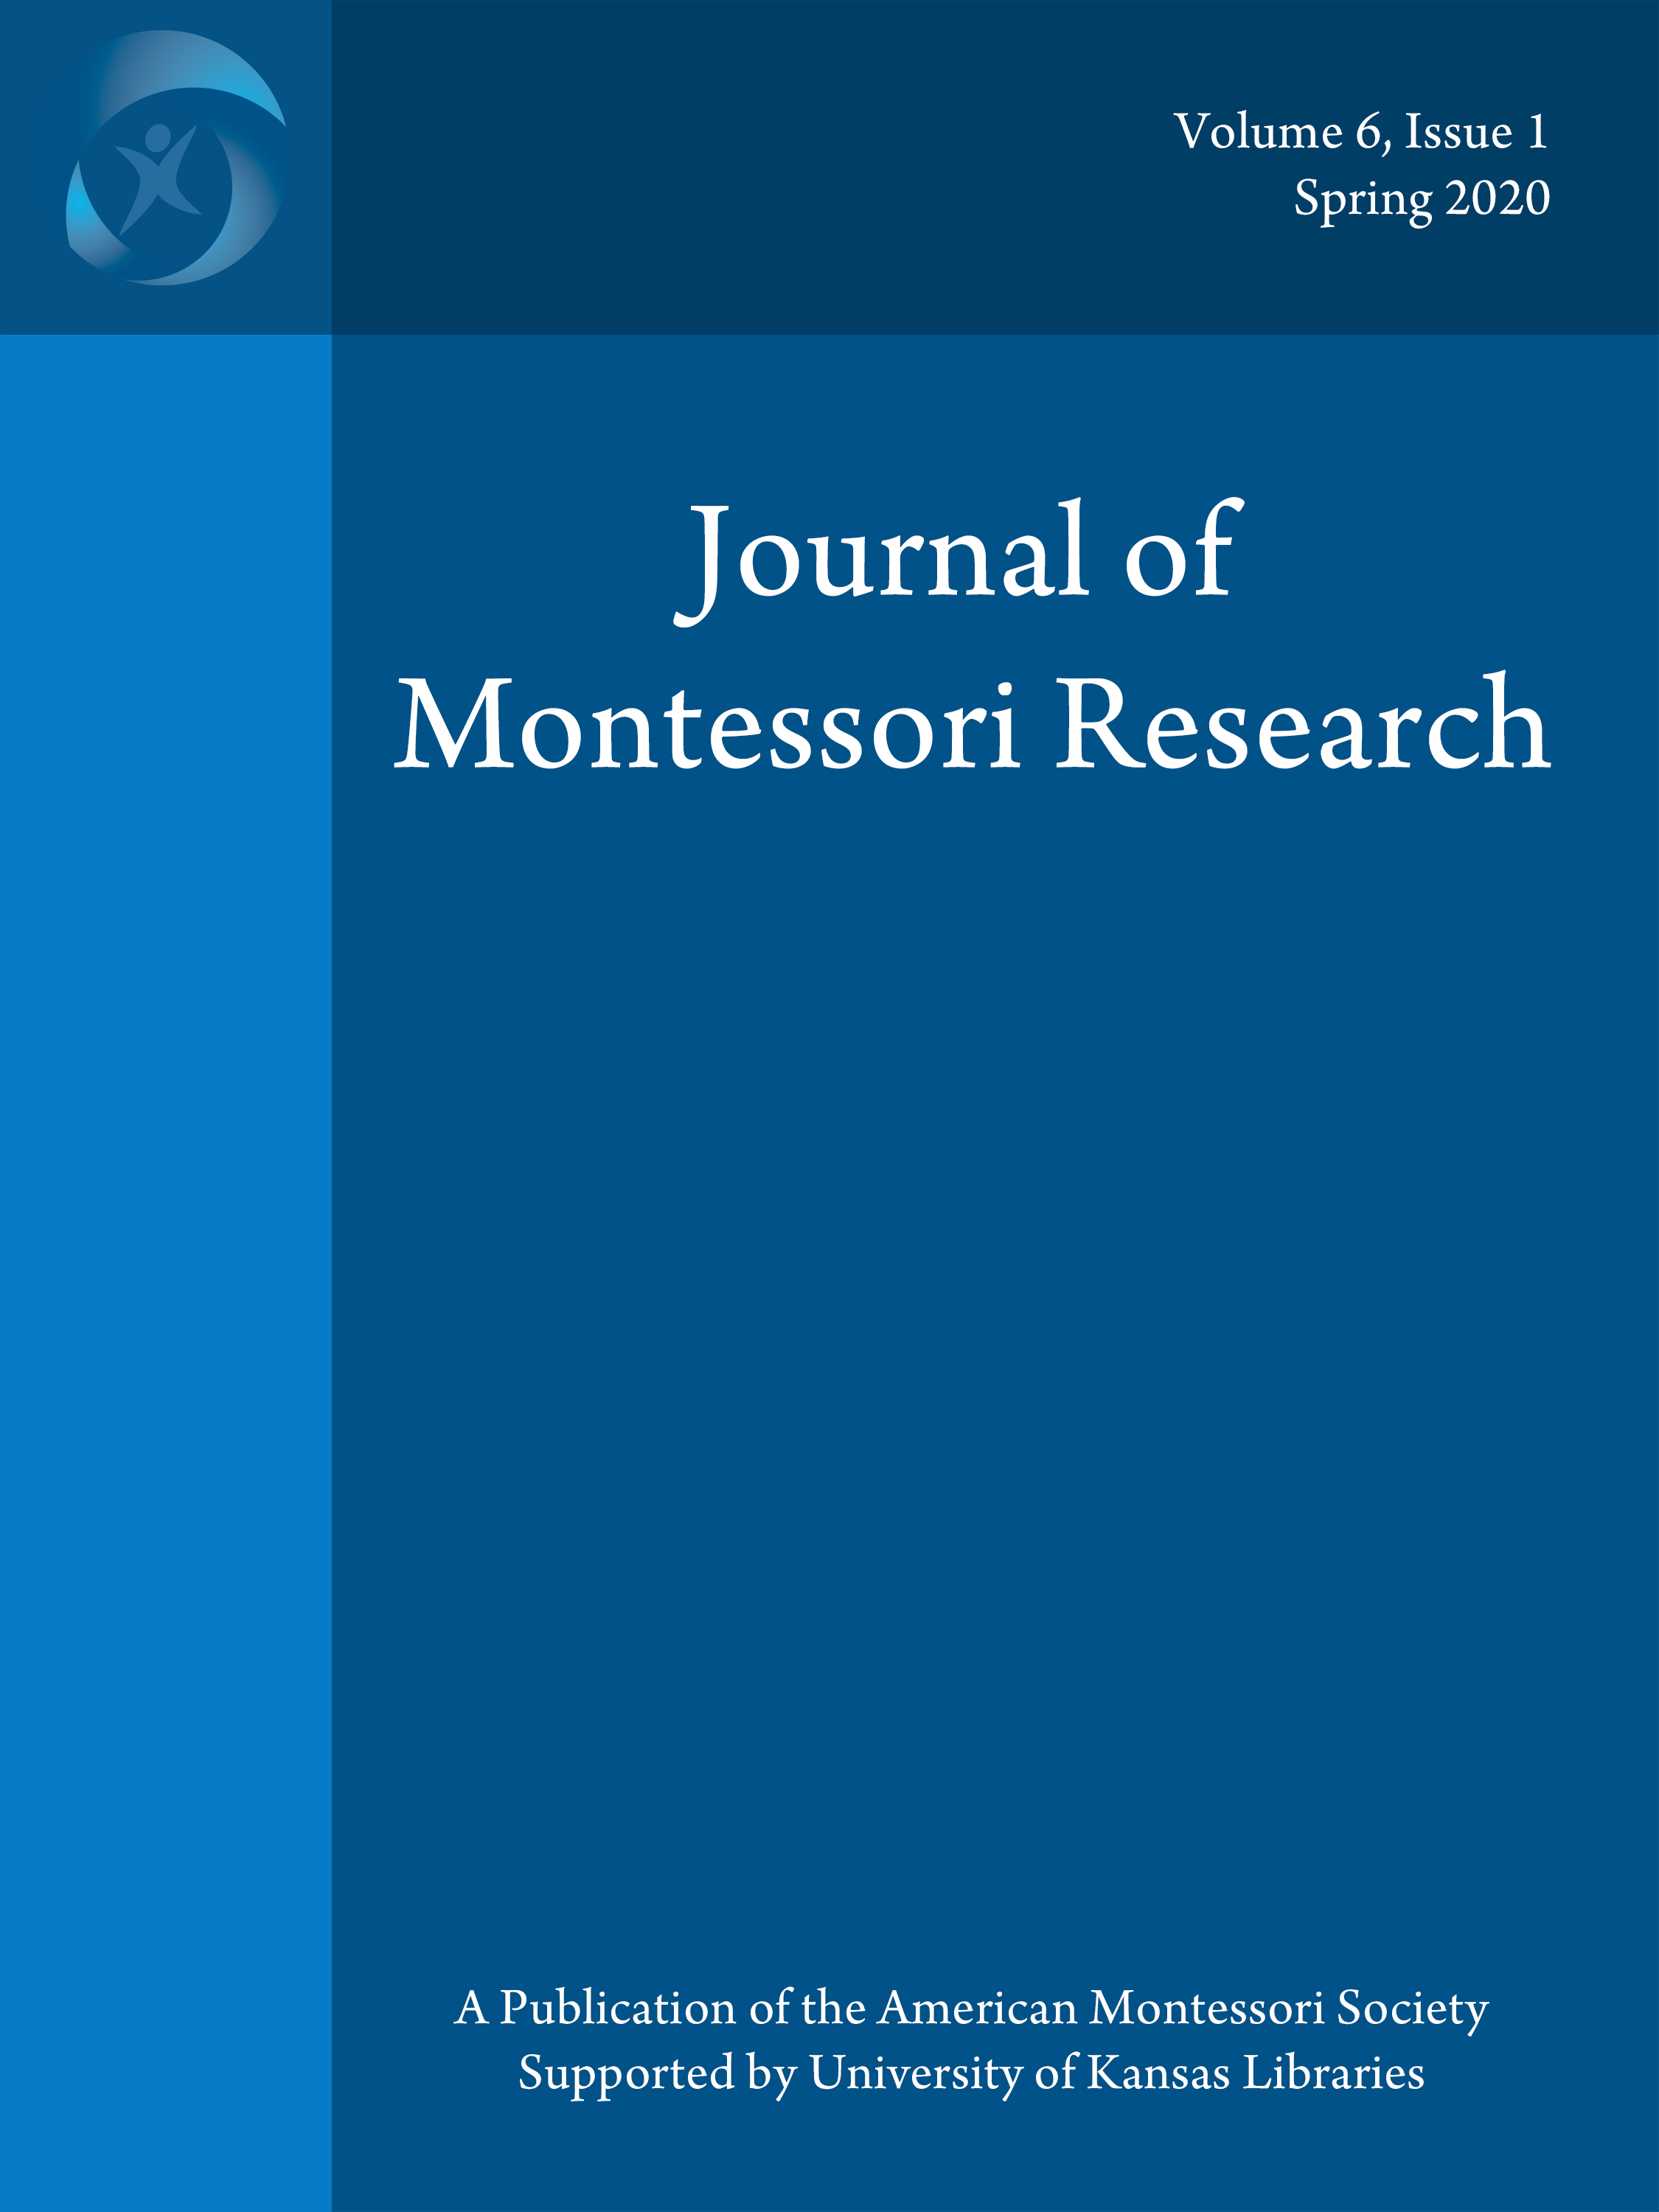 View Vol. 6 No. 1 (2020): Journal of Montessori Research